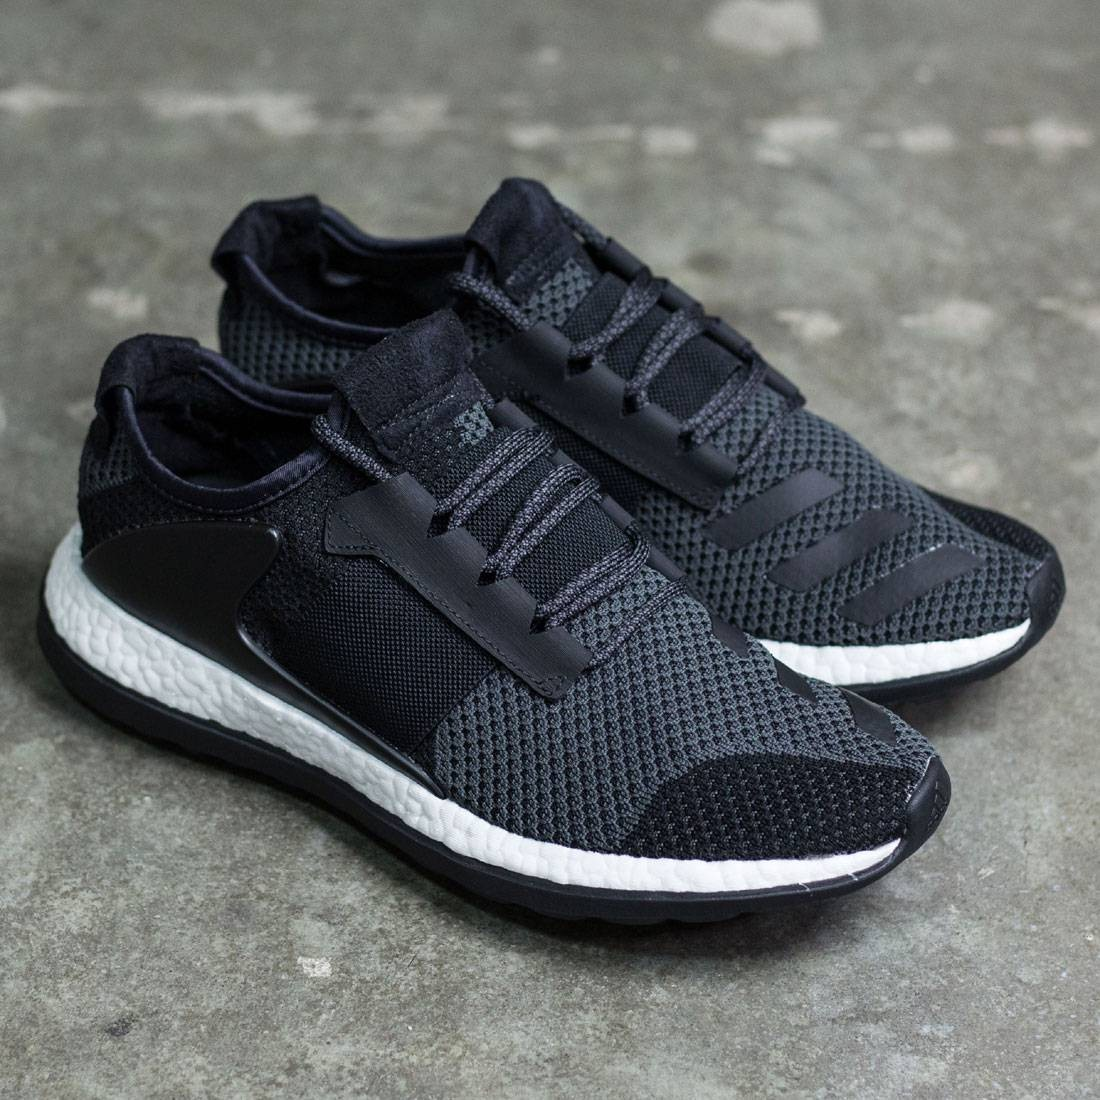 9e52384e2 ... italy adidas consortium day one men ado pure boost zg black core black  608b6 51880 order amazon ...